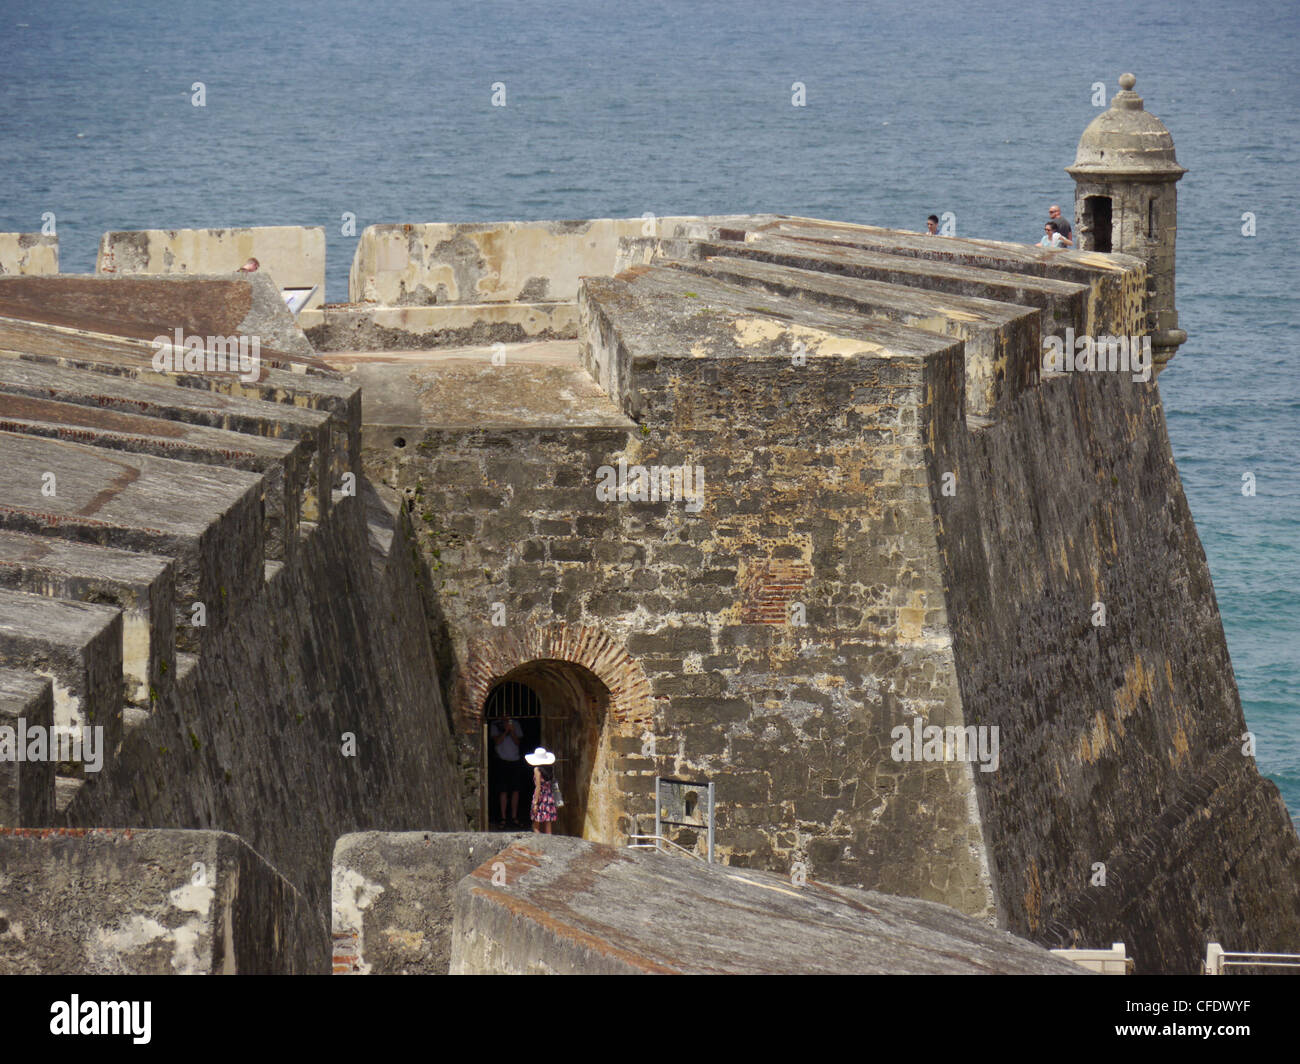 Fortifications, San Juan, Puerto Rico, West Indies, Caribbean, Central America - Stock Image